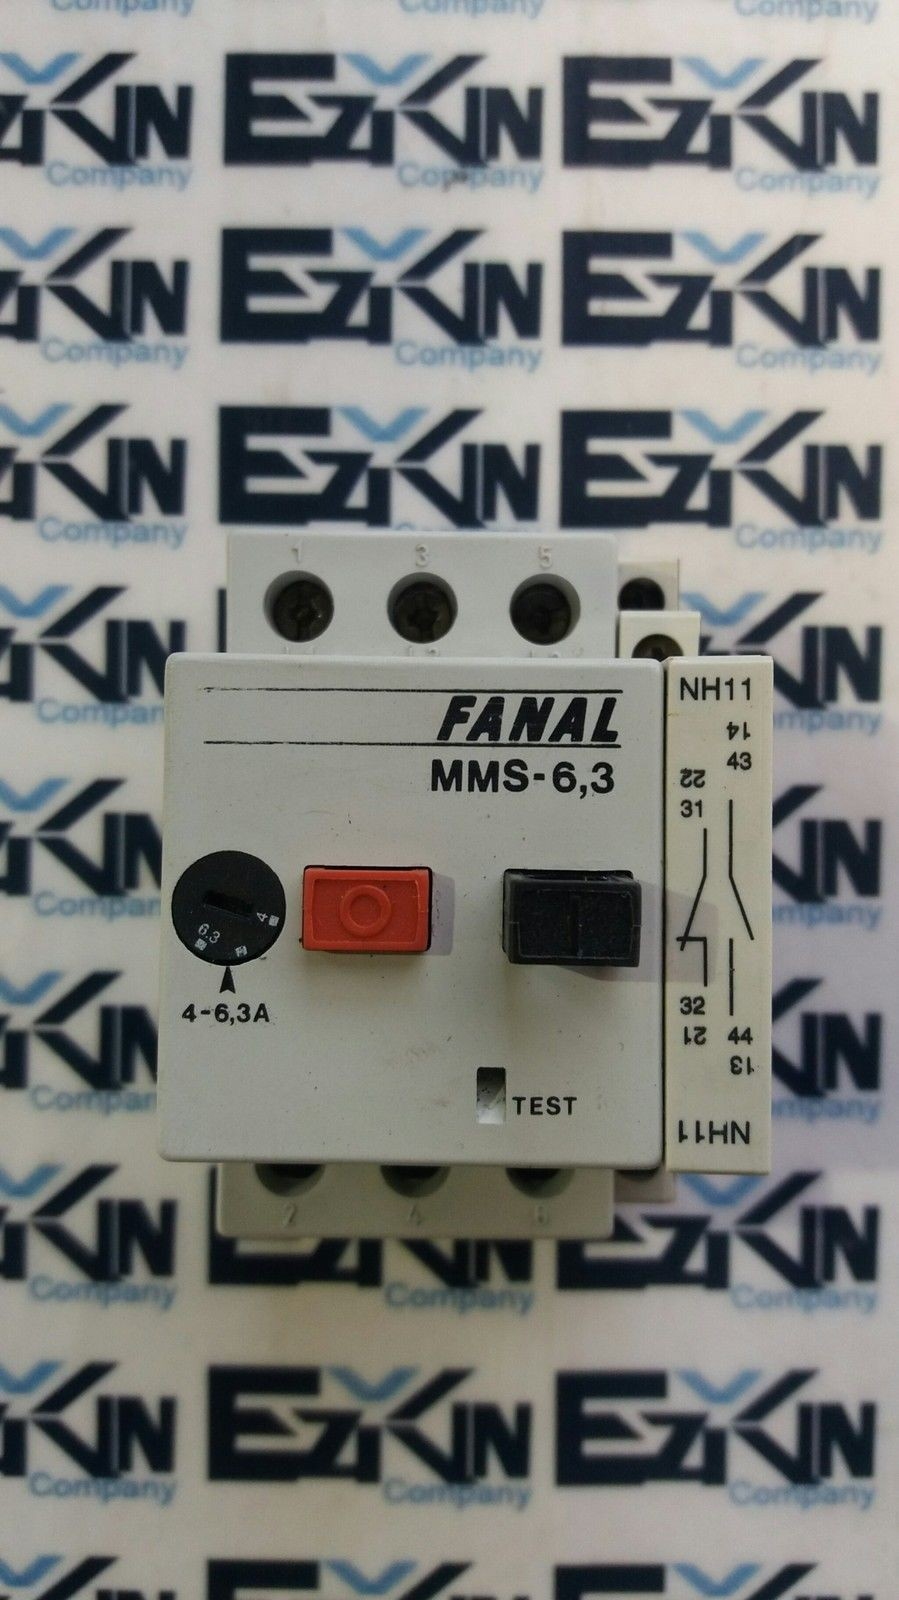 FANAL MMS-6,3 Contactor W/EATON NH11-PKZO Switch Contact Block